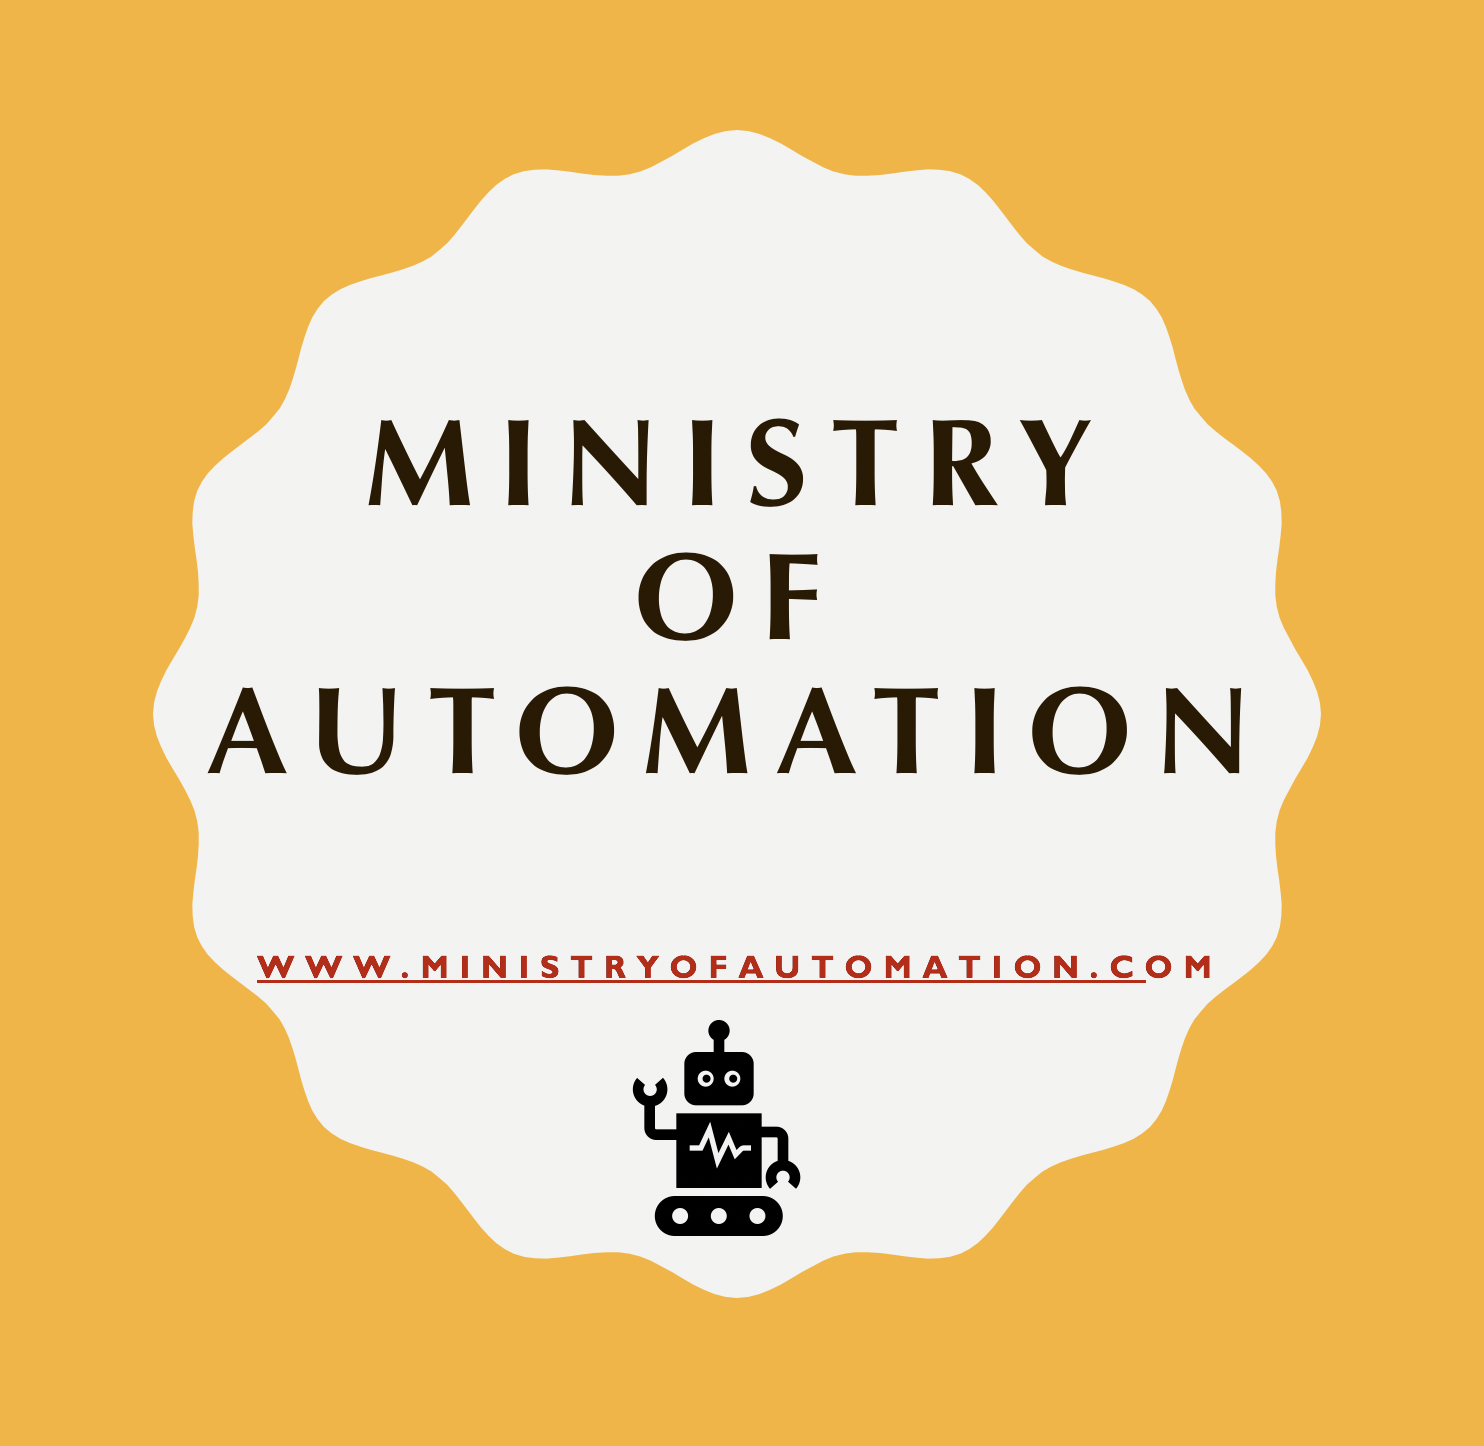 Ministry of Automation